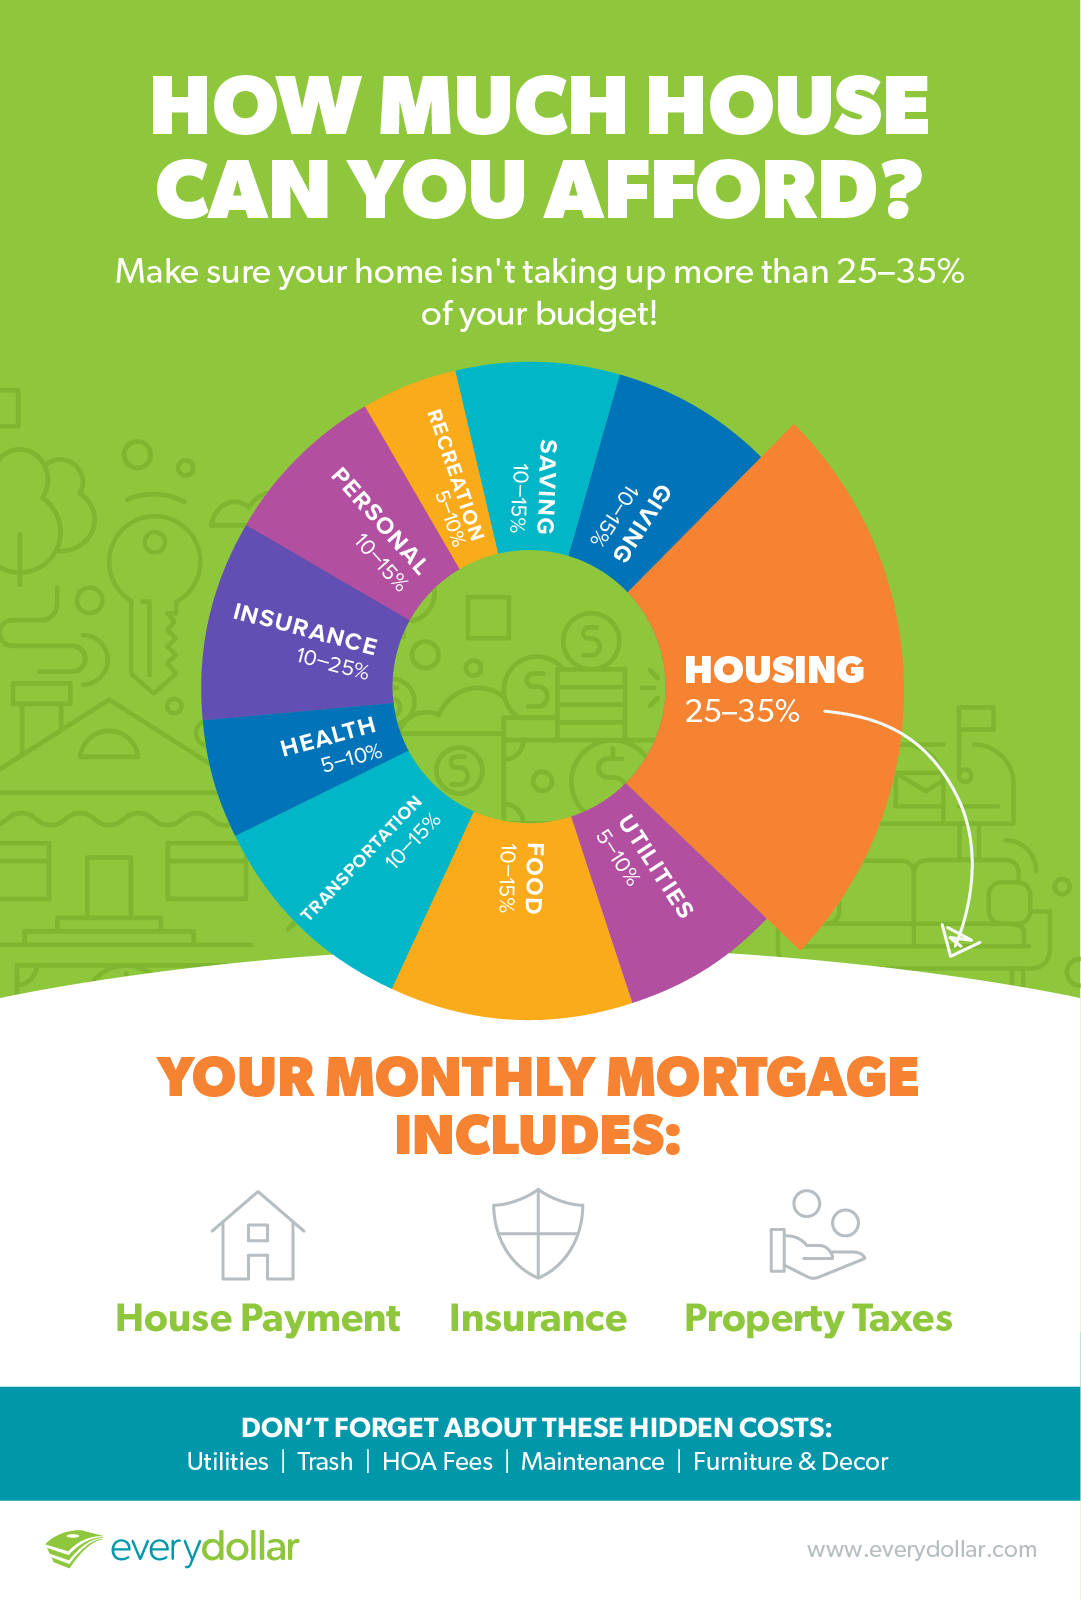 Budget Percentages for Your Home and Mortgage